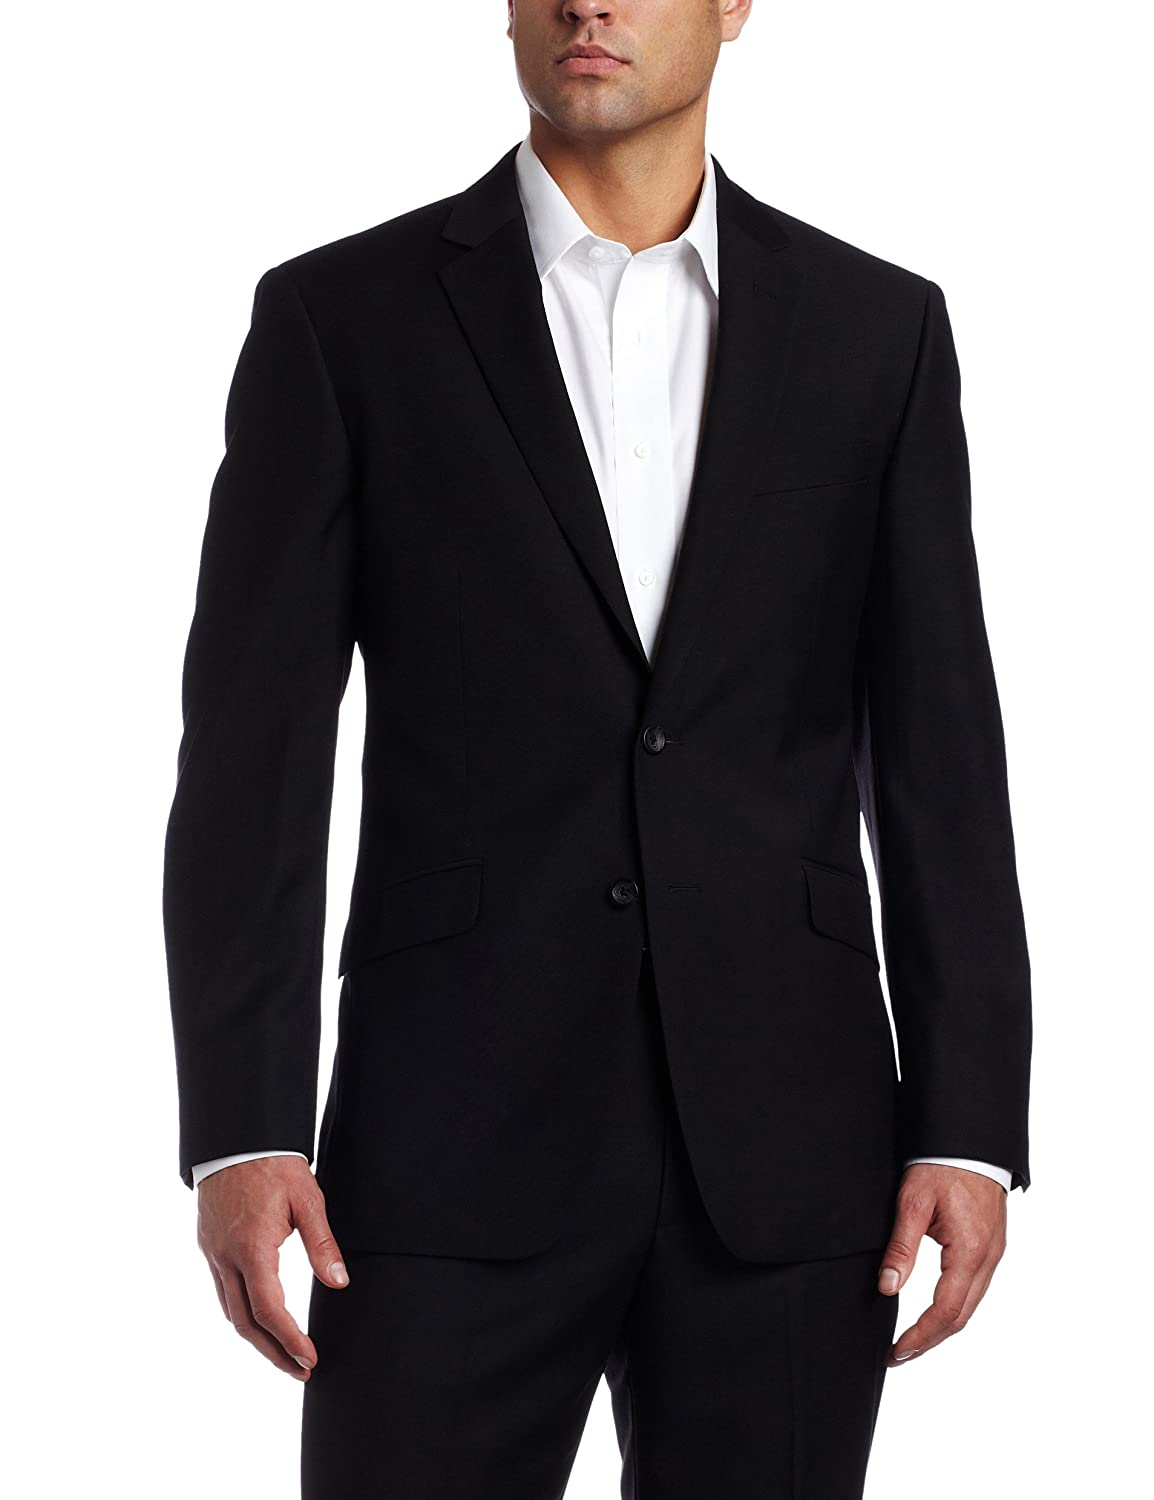 Kenneth Cole REACTION Men's Black-Solid Suit Separate Jacket at ...